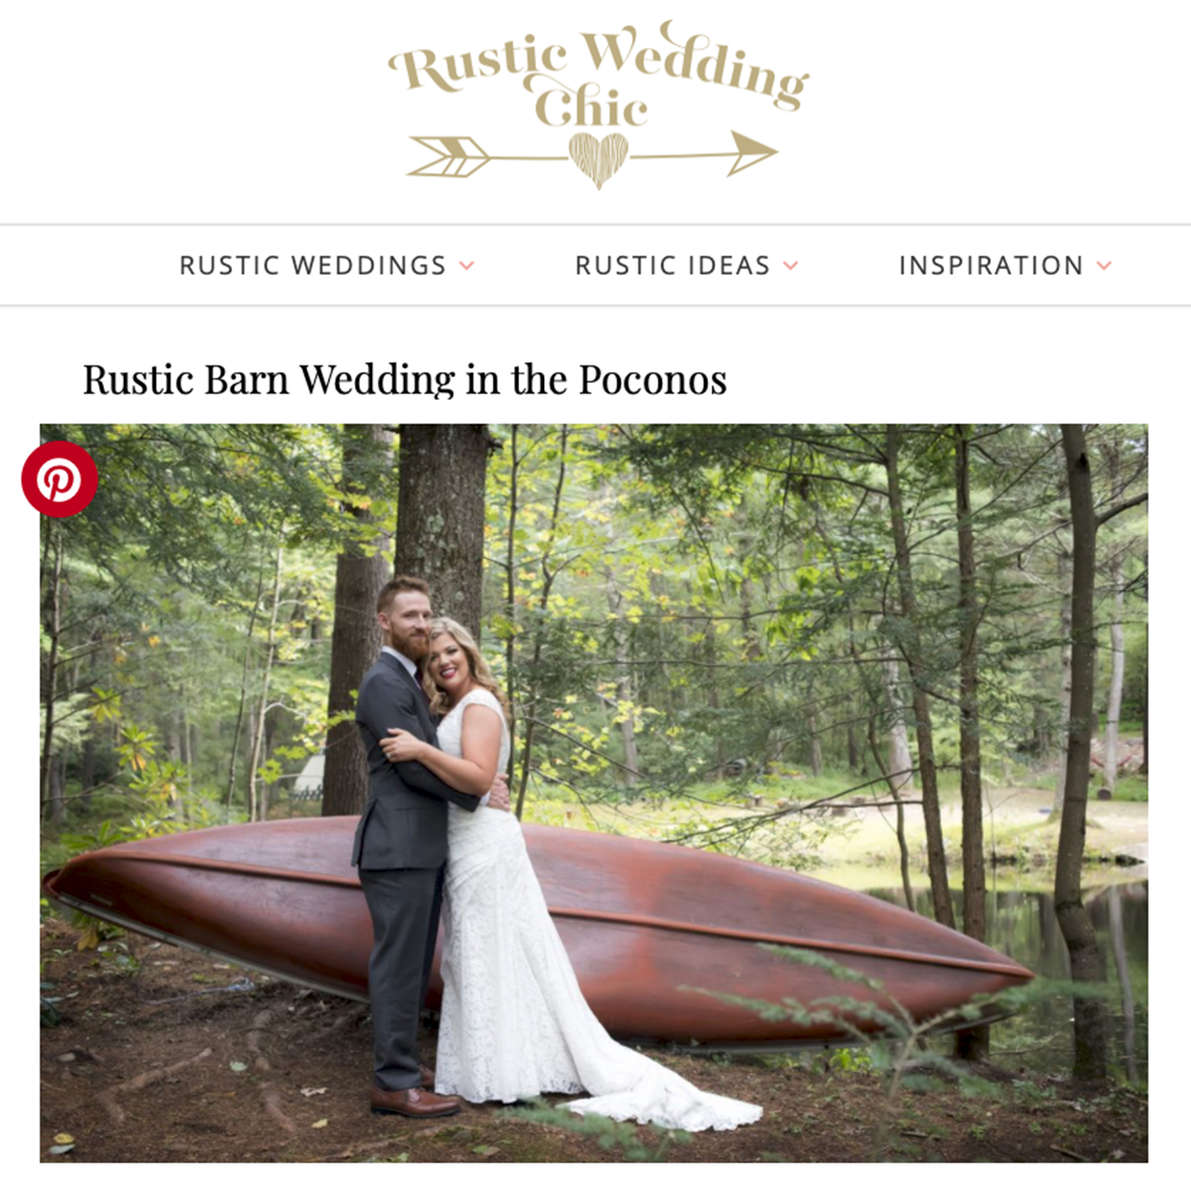 Rustic Wedding Chic - July 2019read the full post here